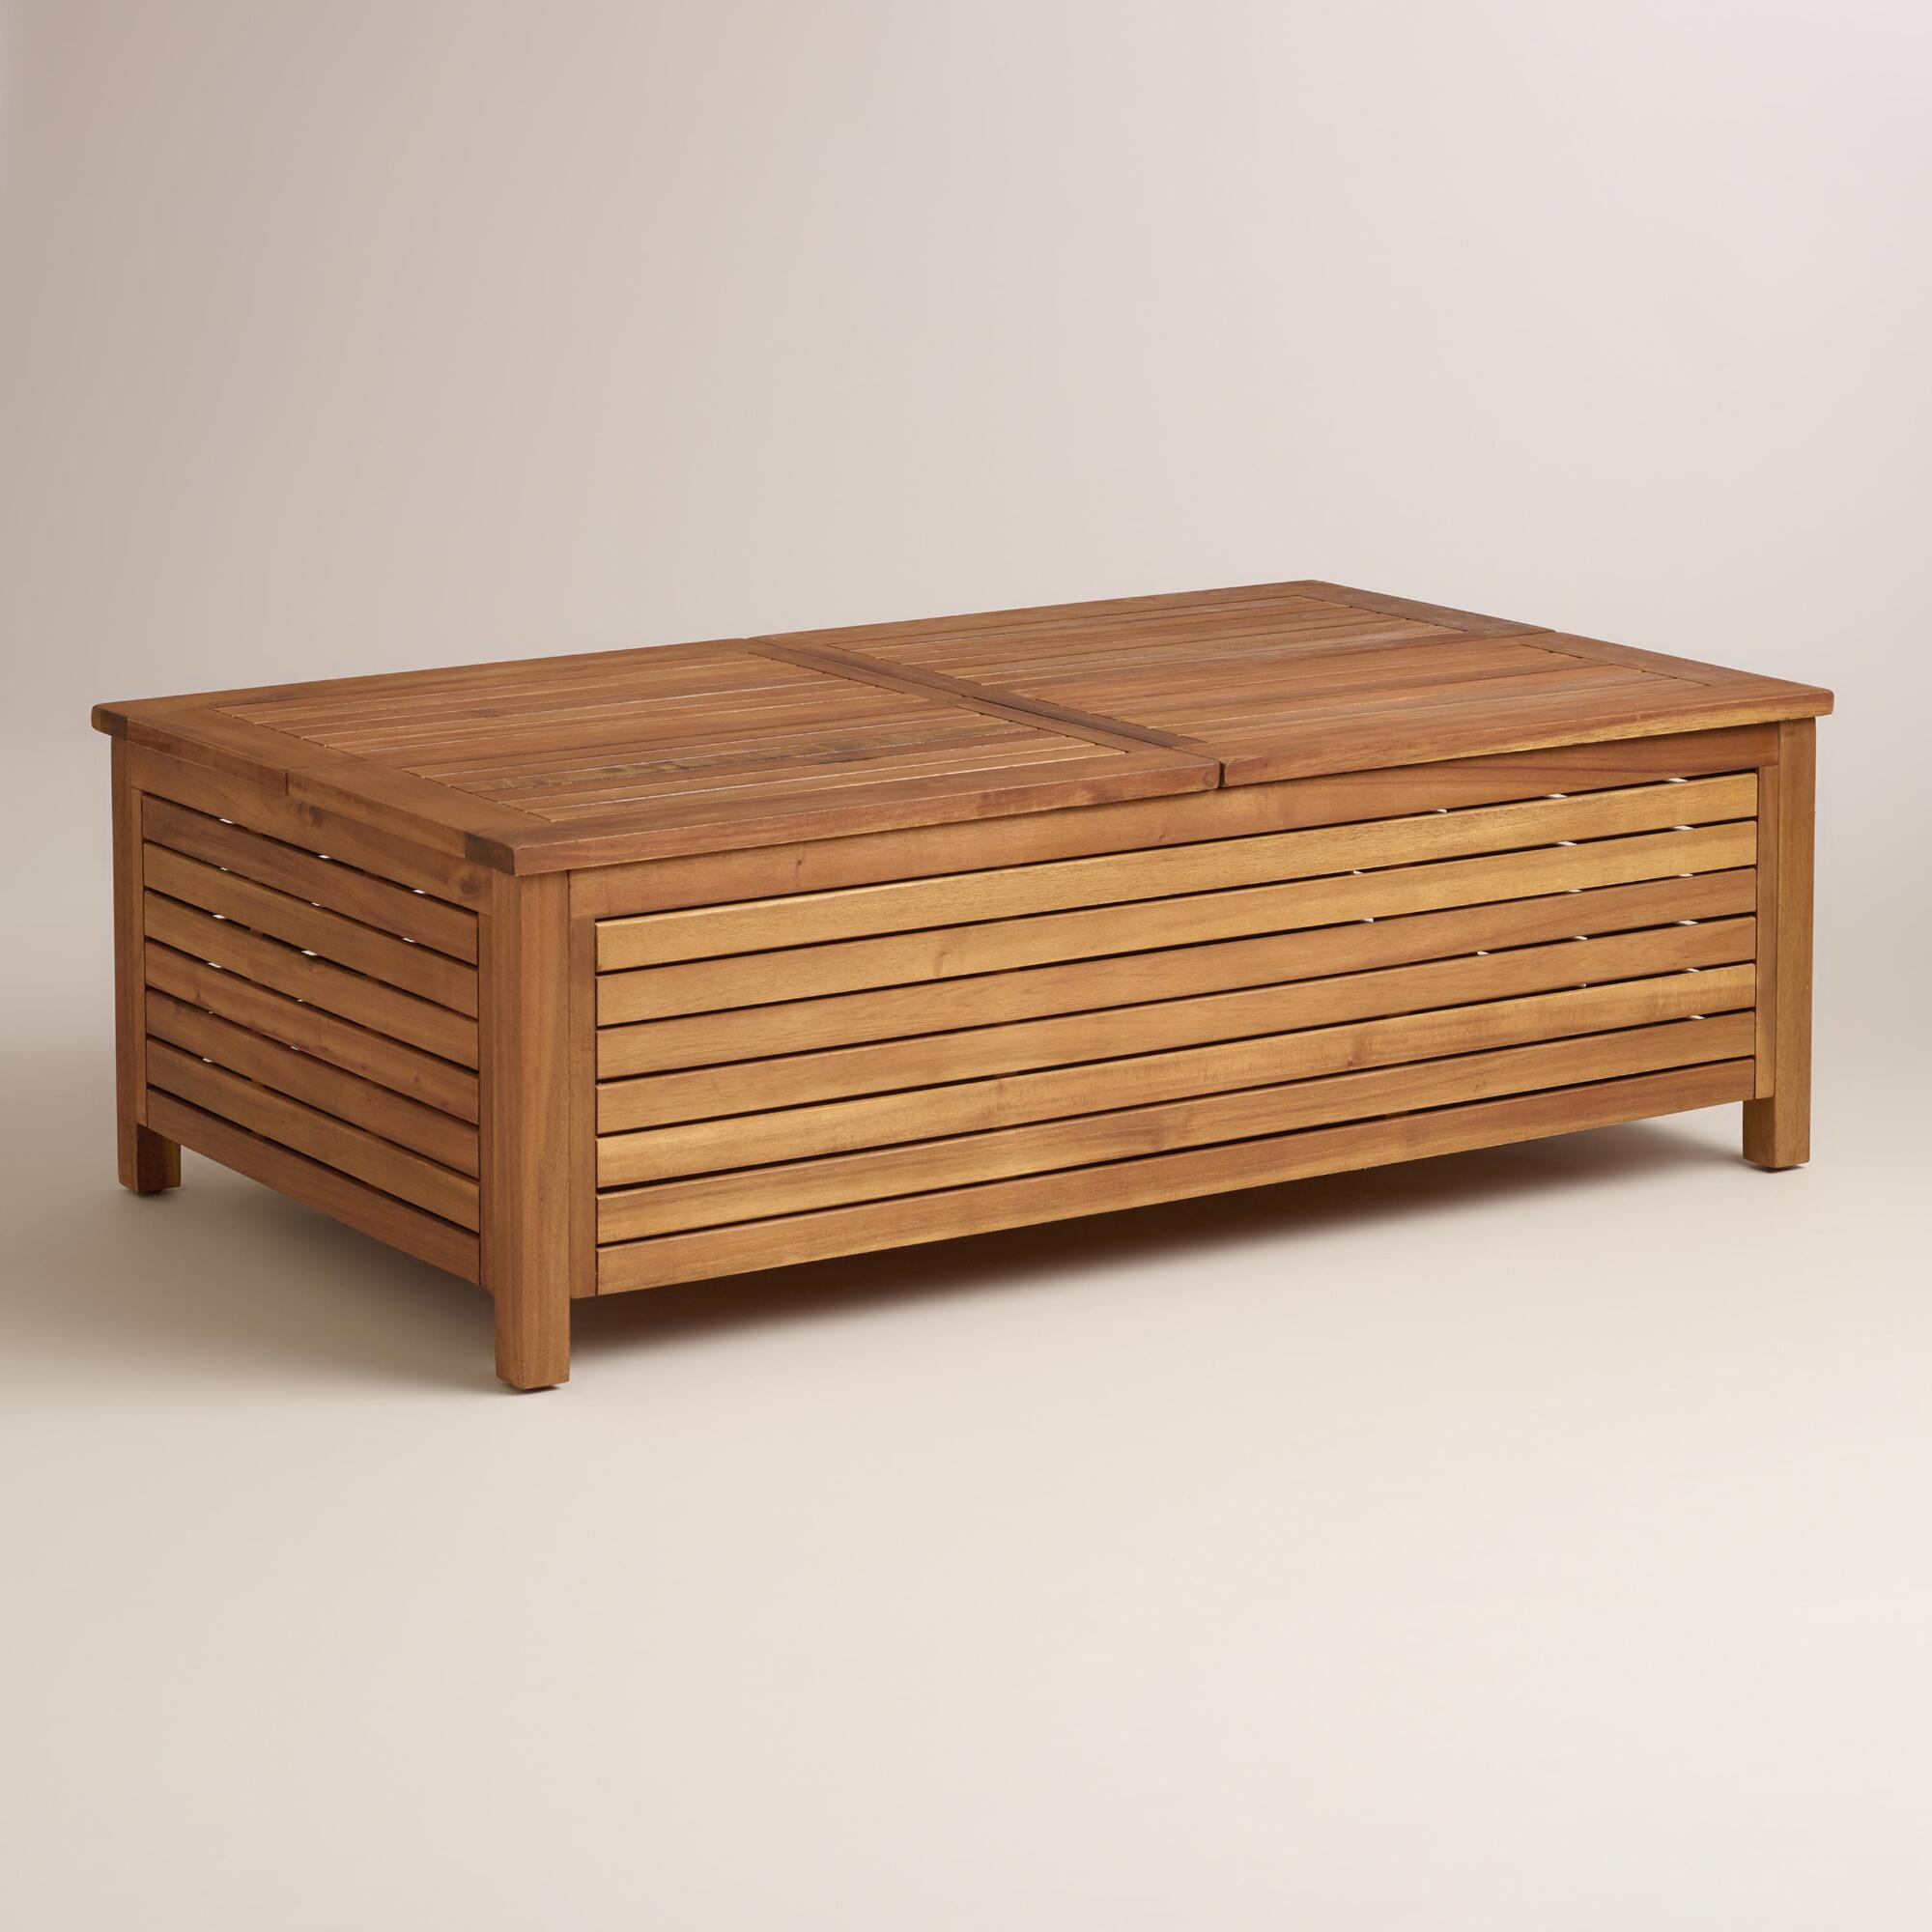 Wood Praiano Outdoor Storage Coffee Table | World Market